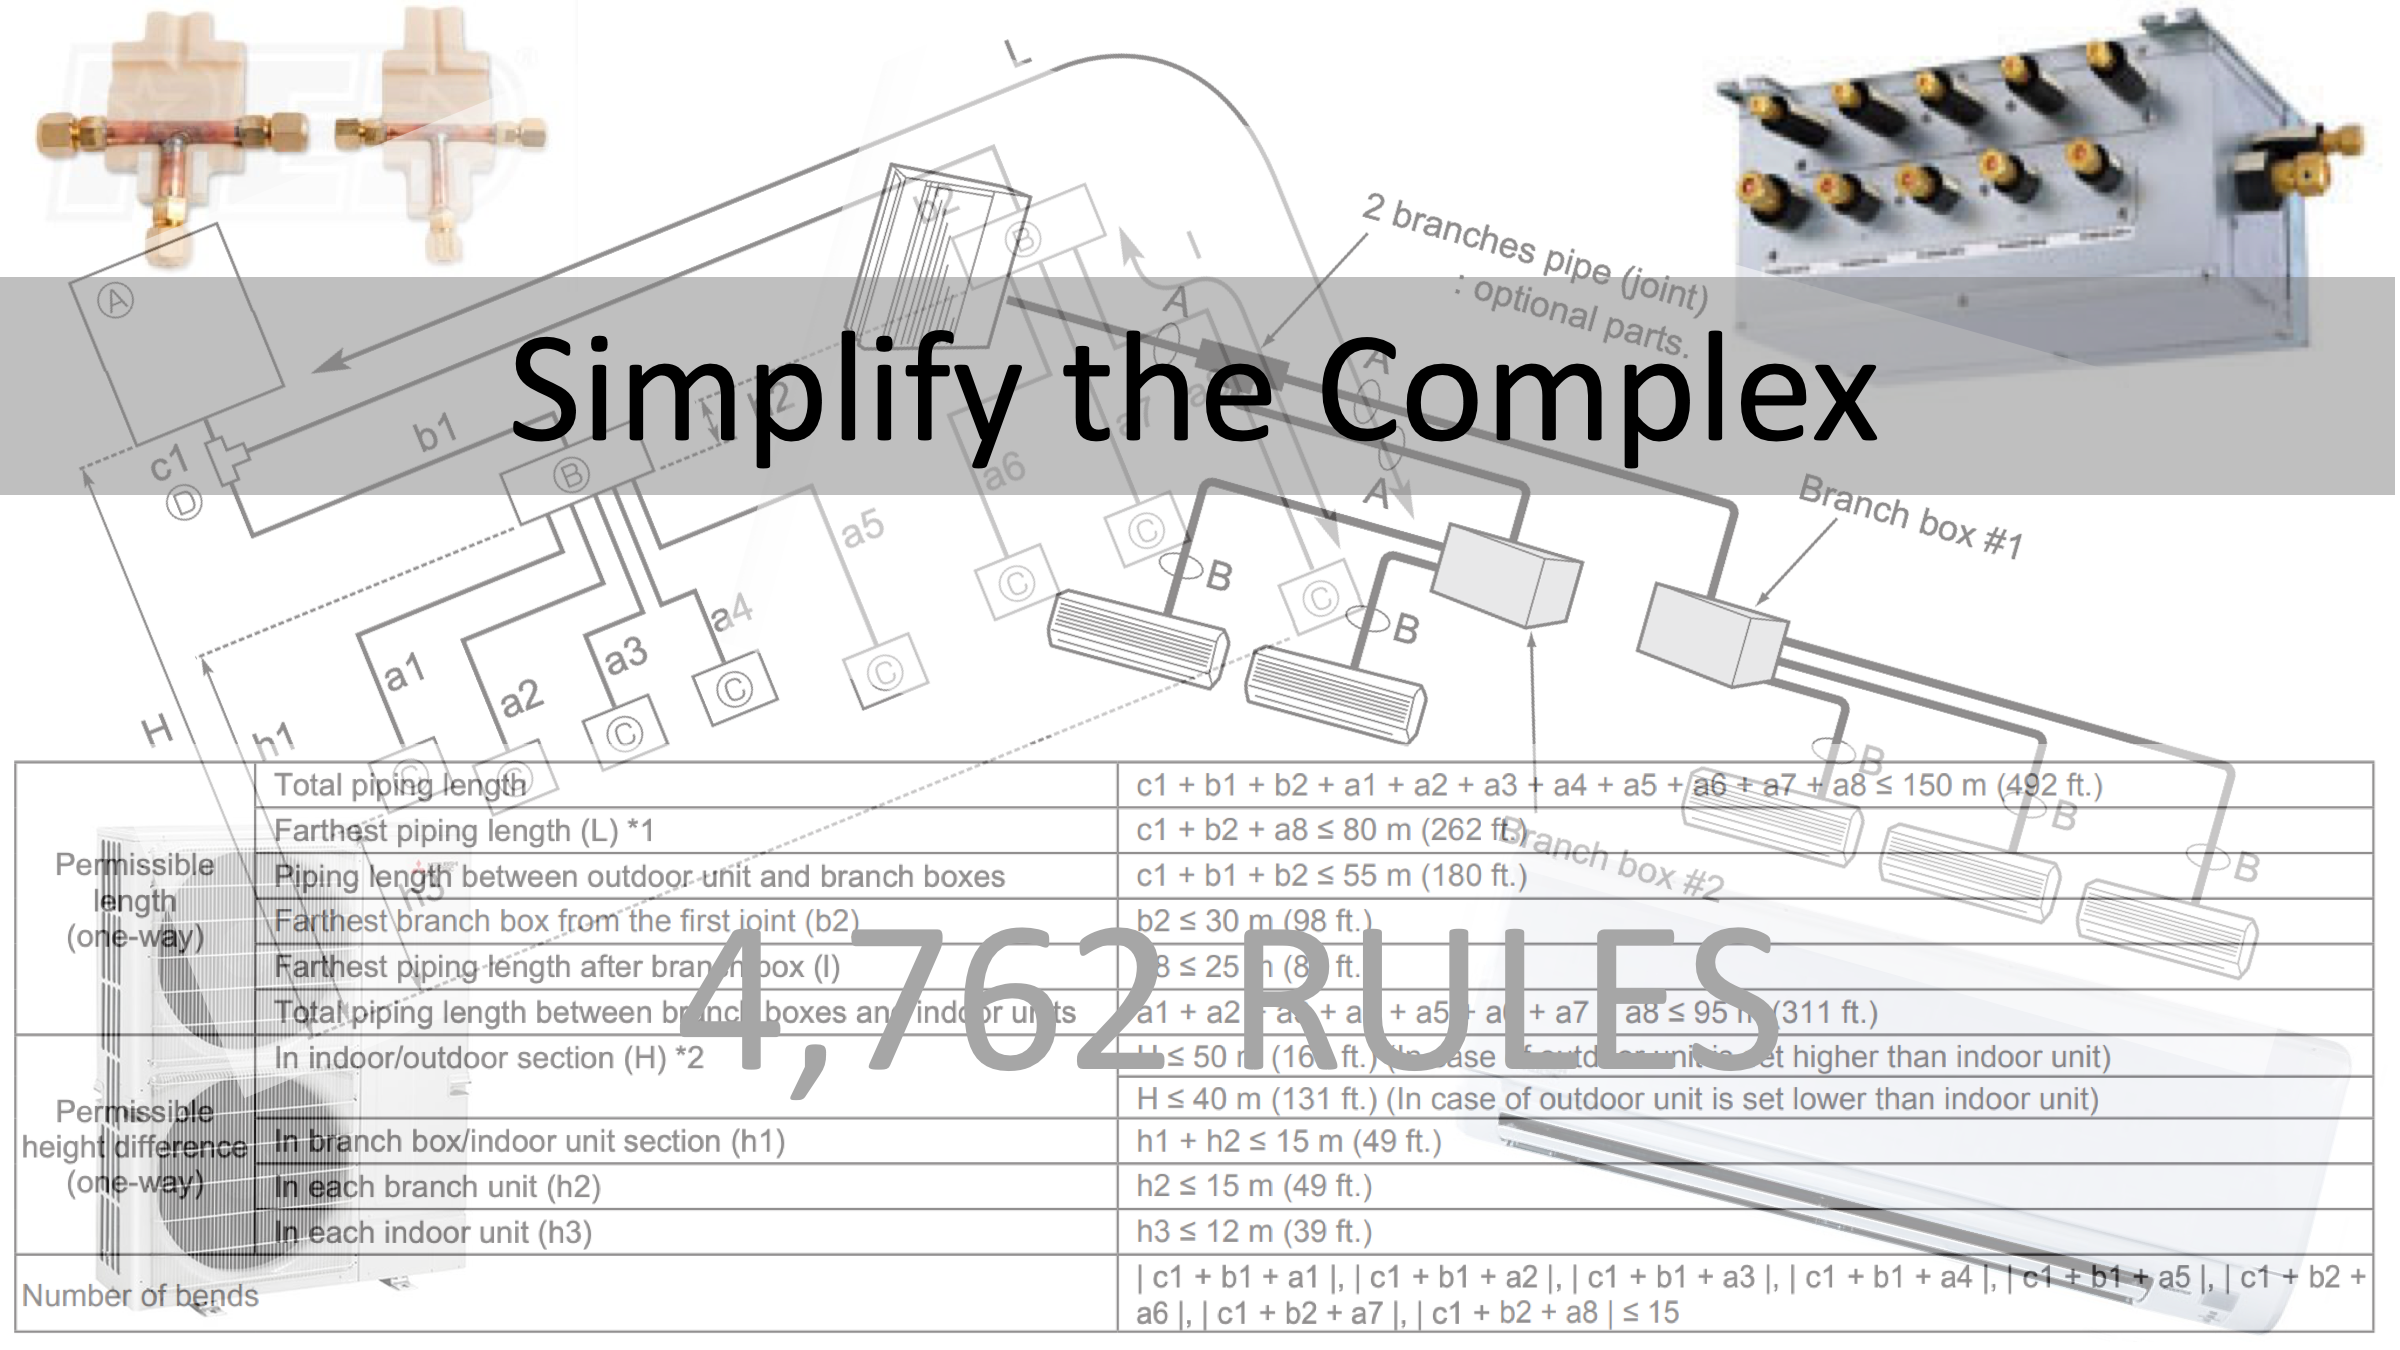 Simplify the Complex webpae image